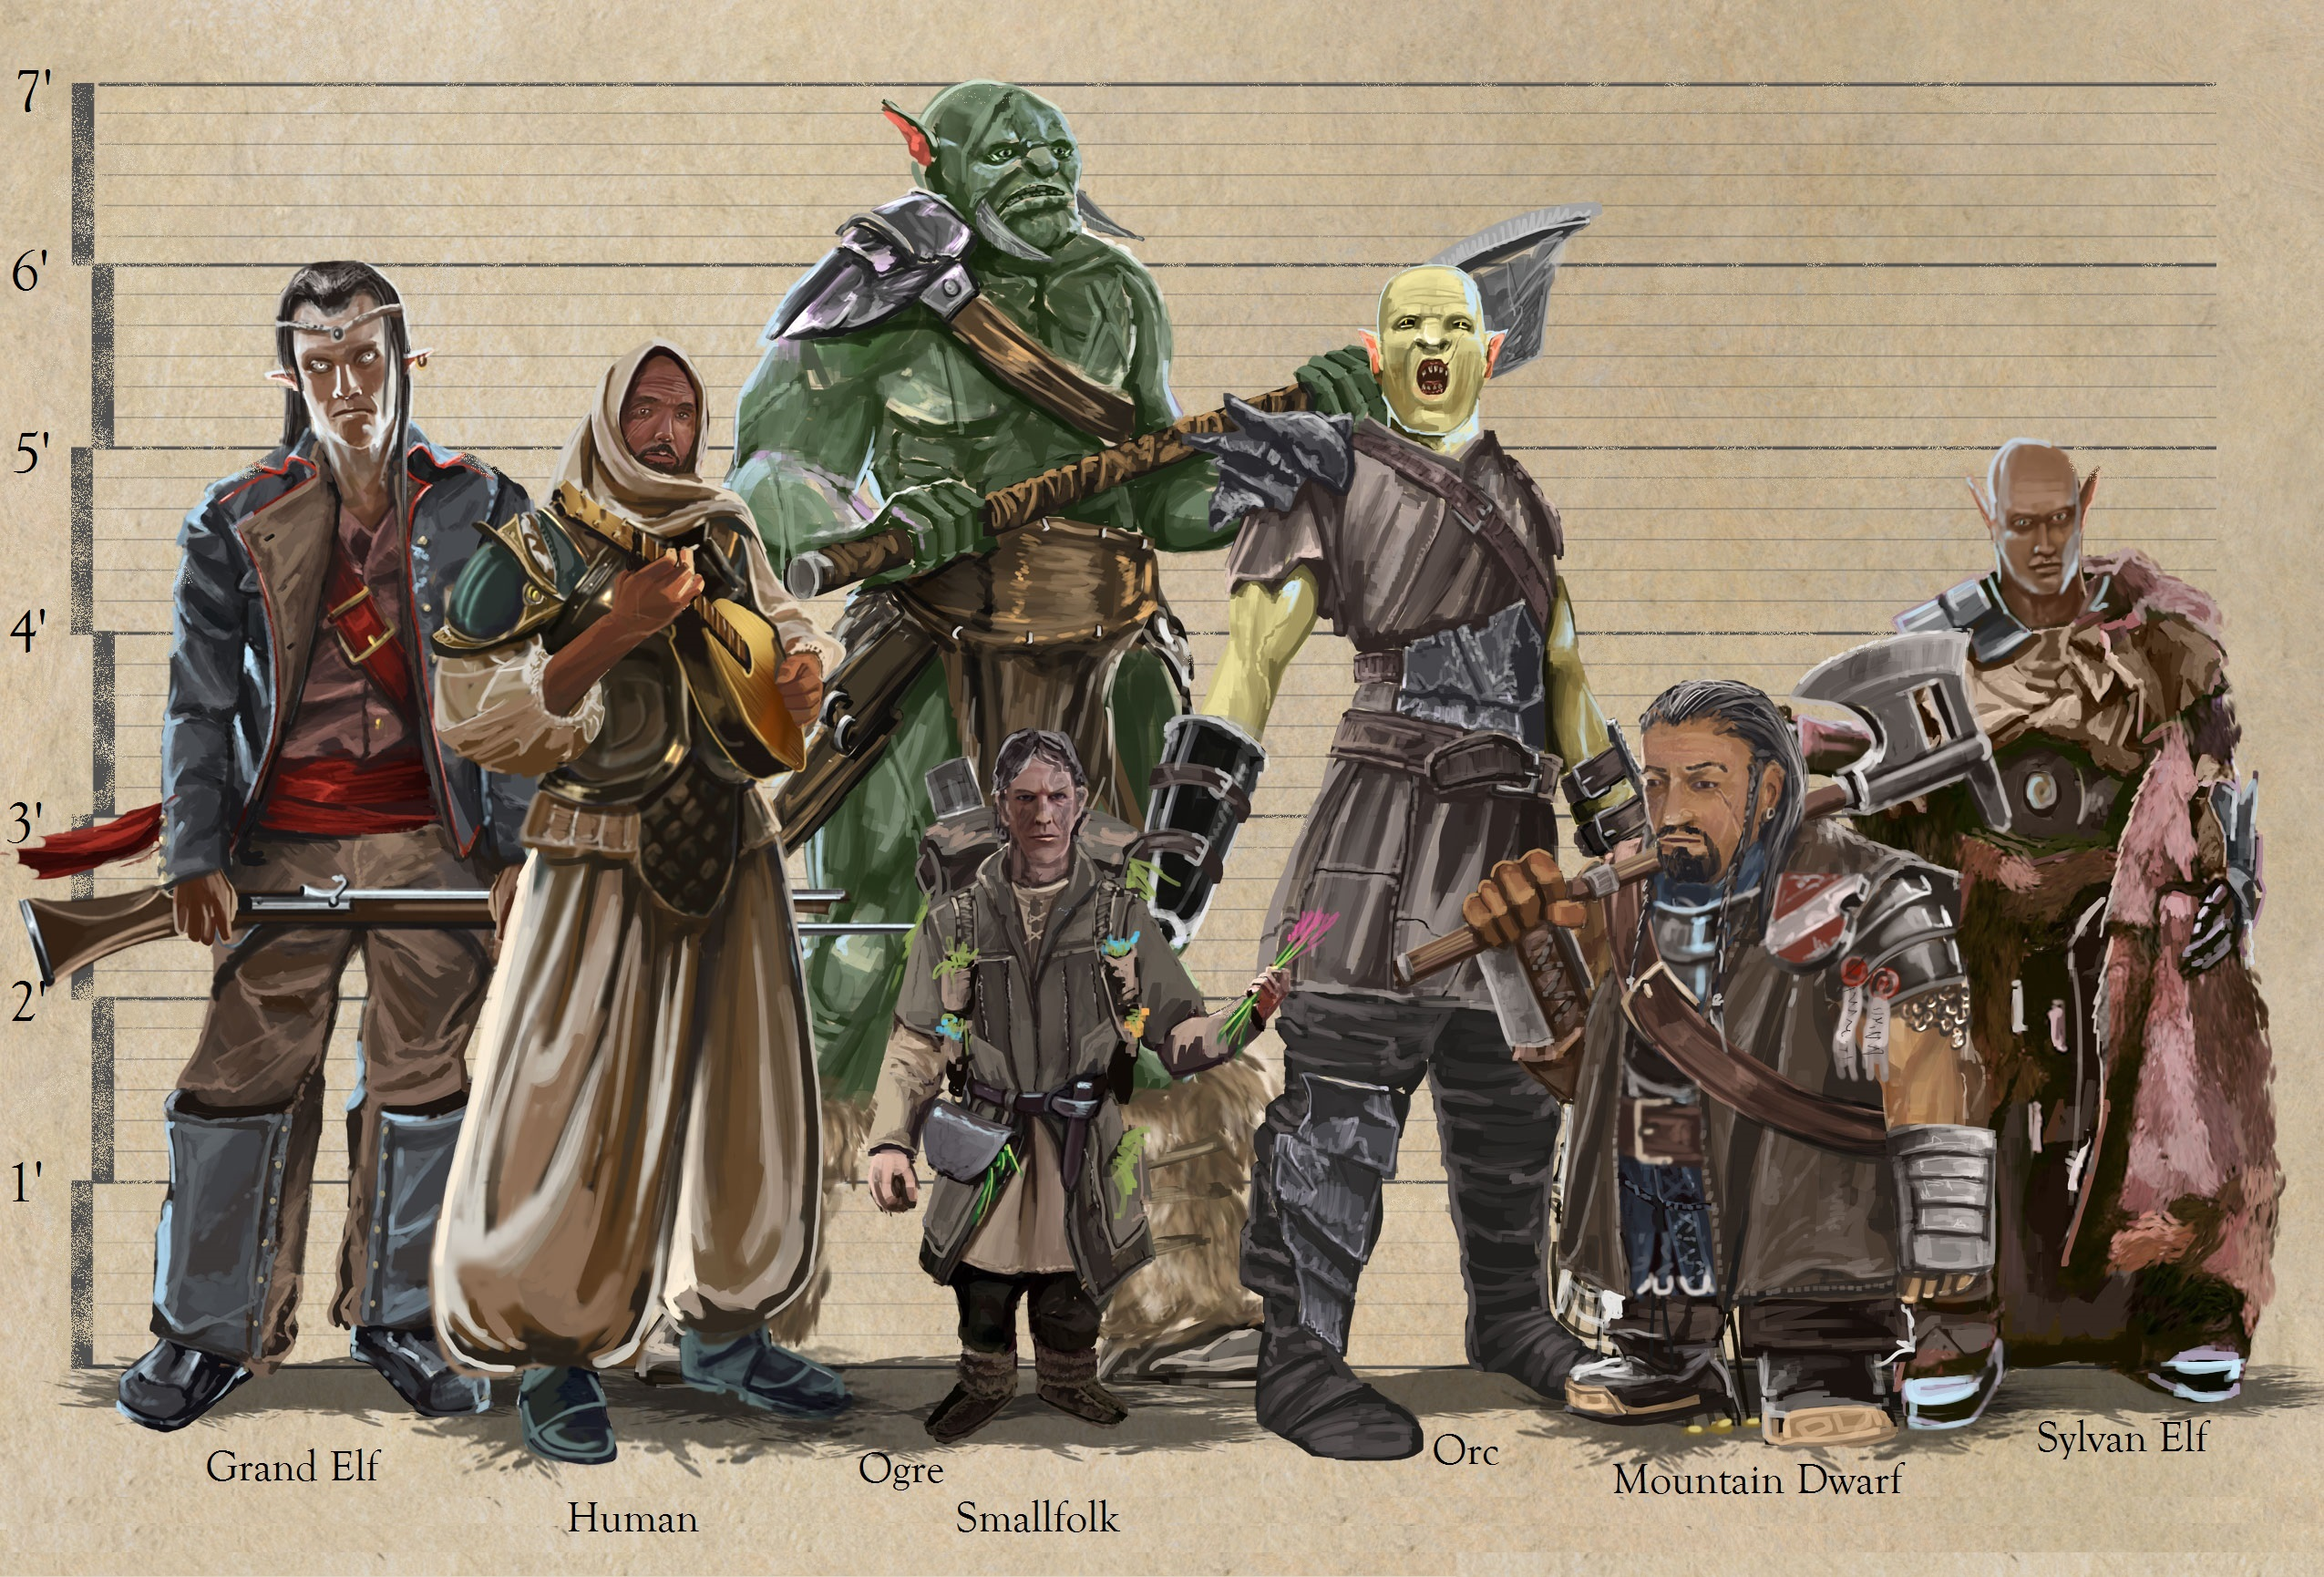 Dungeons and Dragons--Races including Orc, Elf, Dwarf and Human